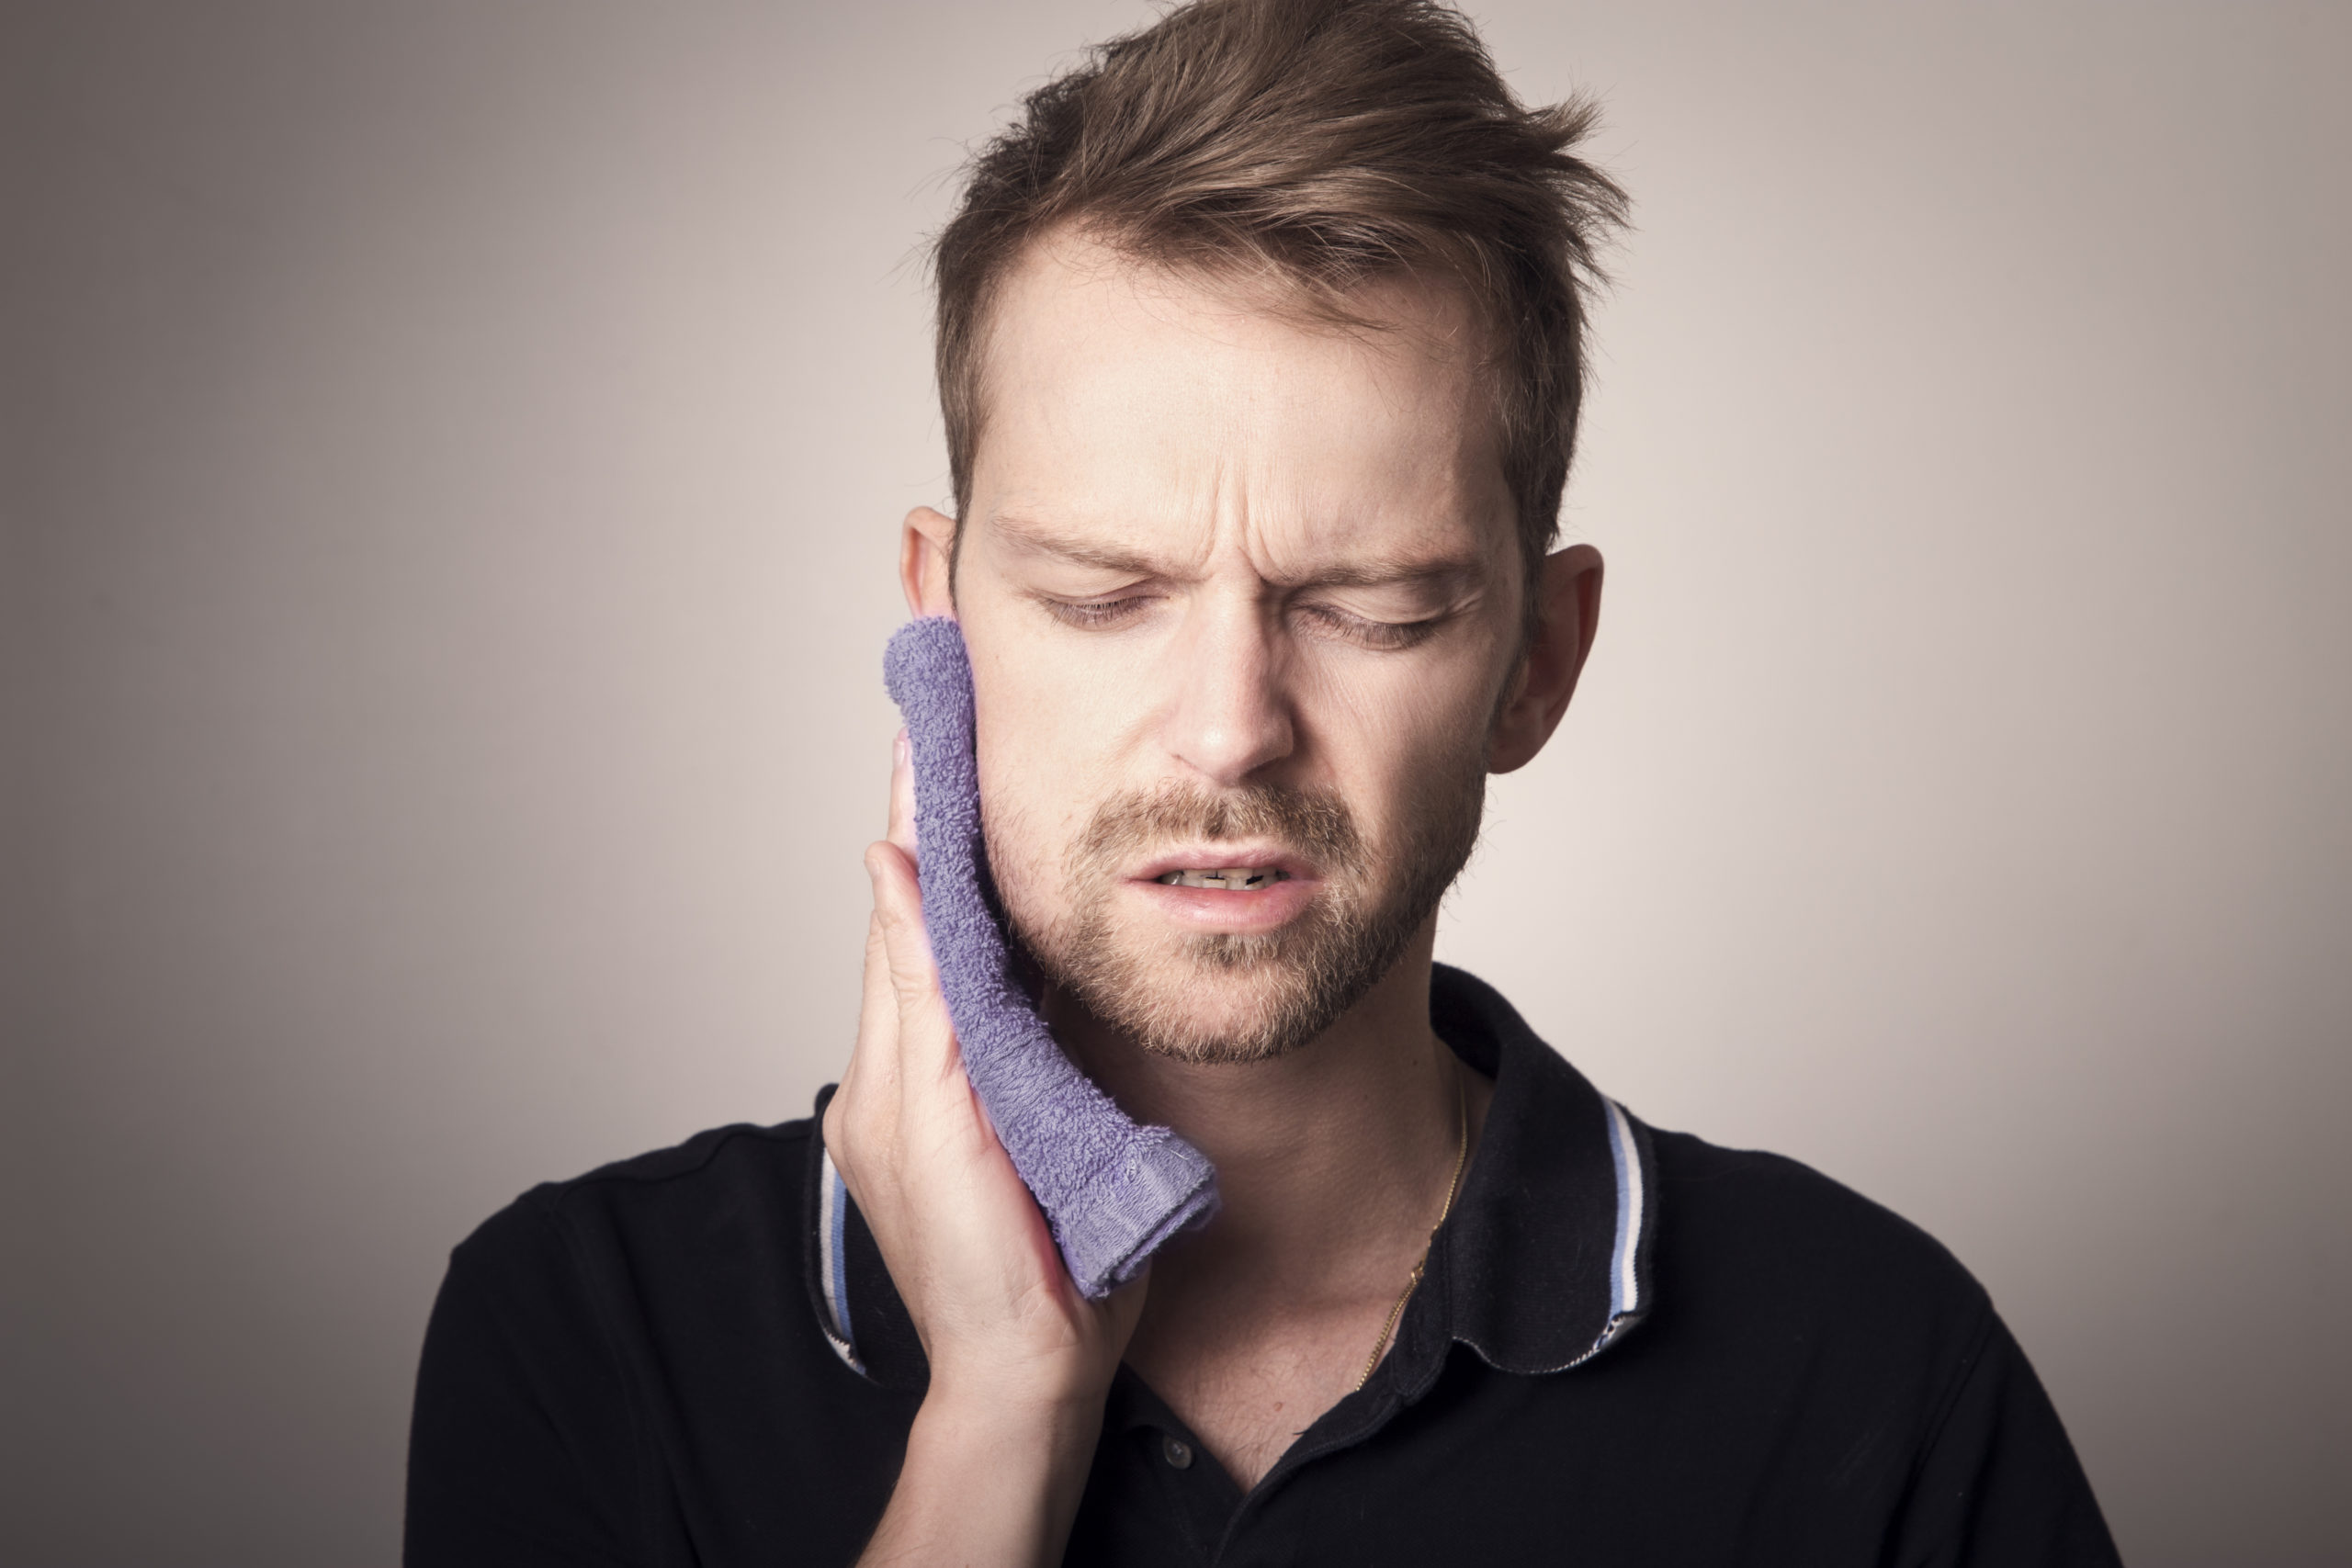 What Are Wisdom Teeth Warning Signs The James Clinic